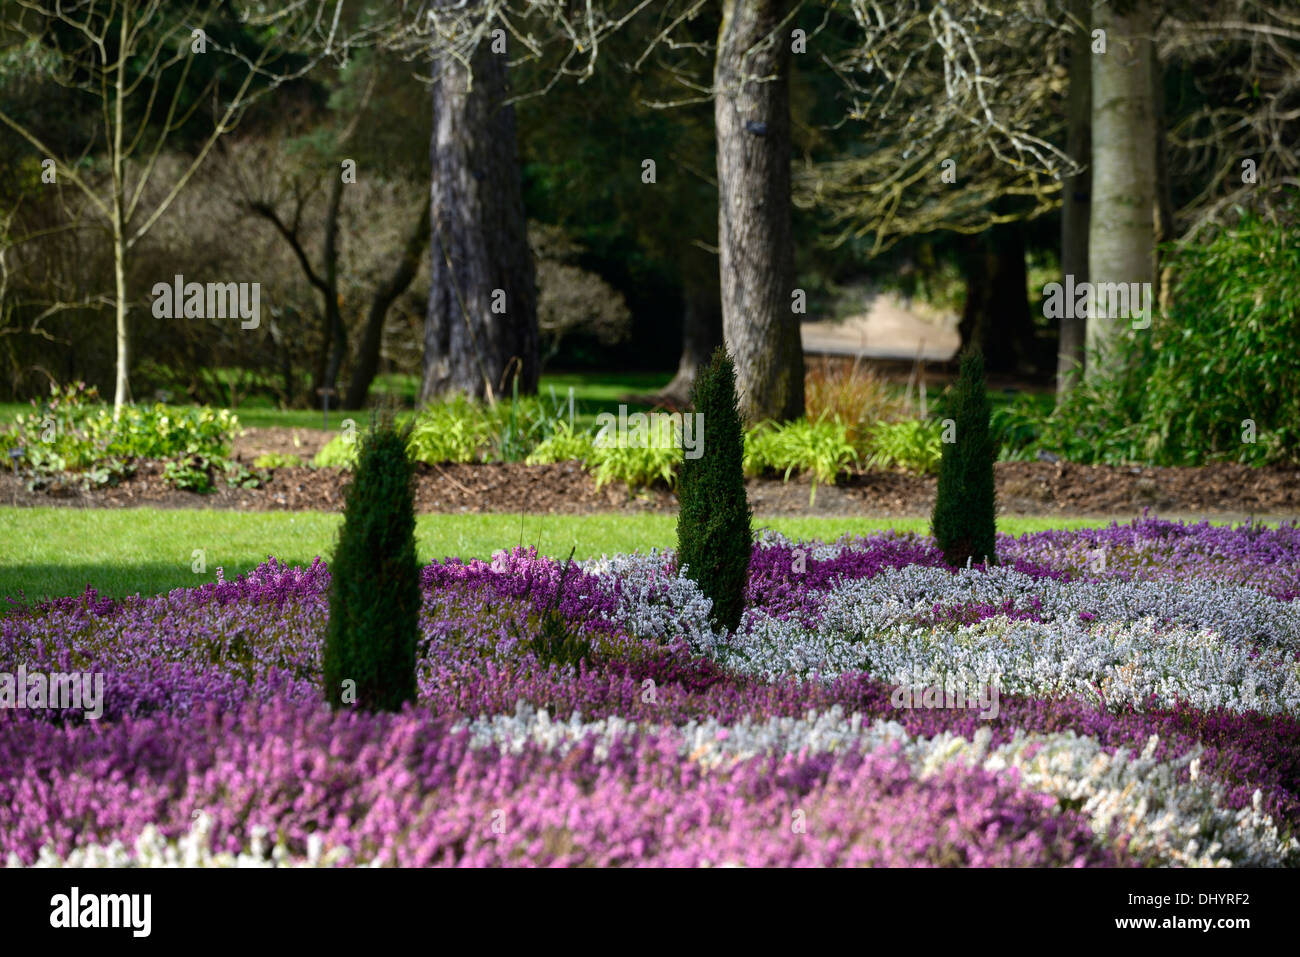 erica carnea heidekraut wei e blume garten pflanze winter. Black Bedroom Furniture Sets. Home Design Ideas